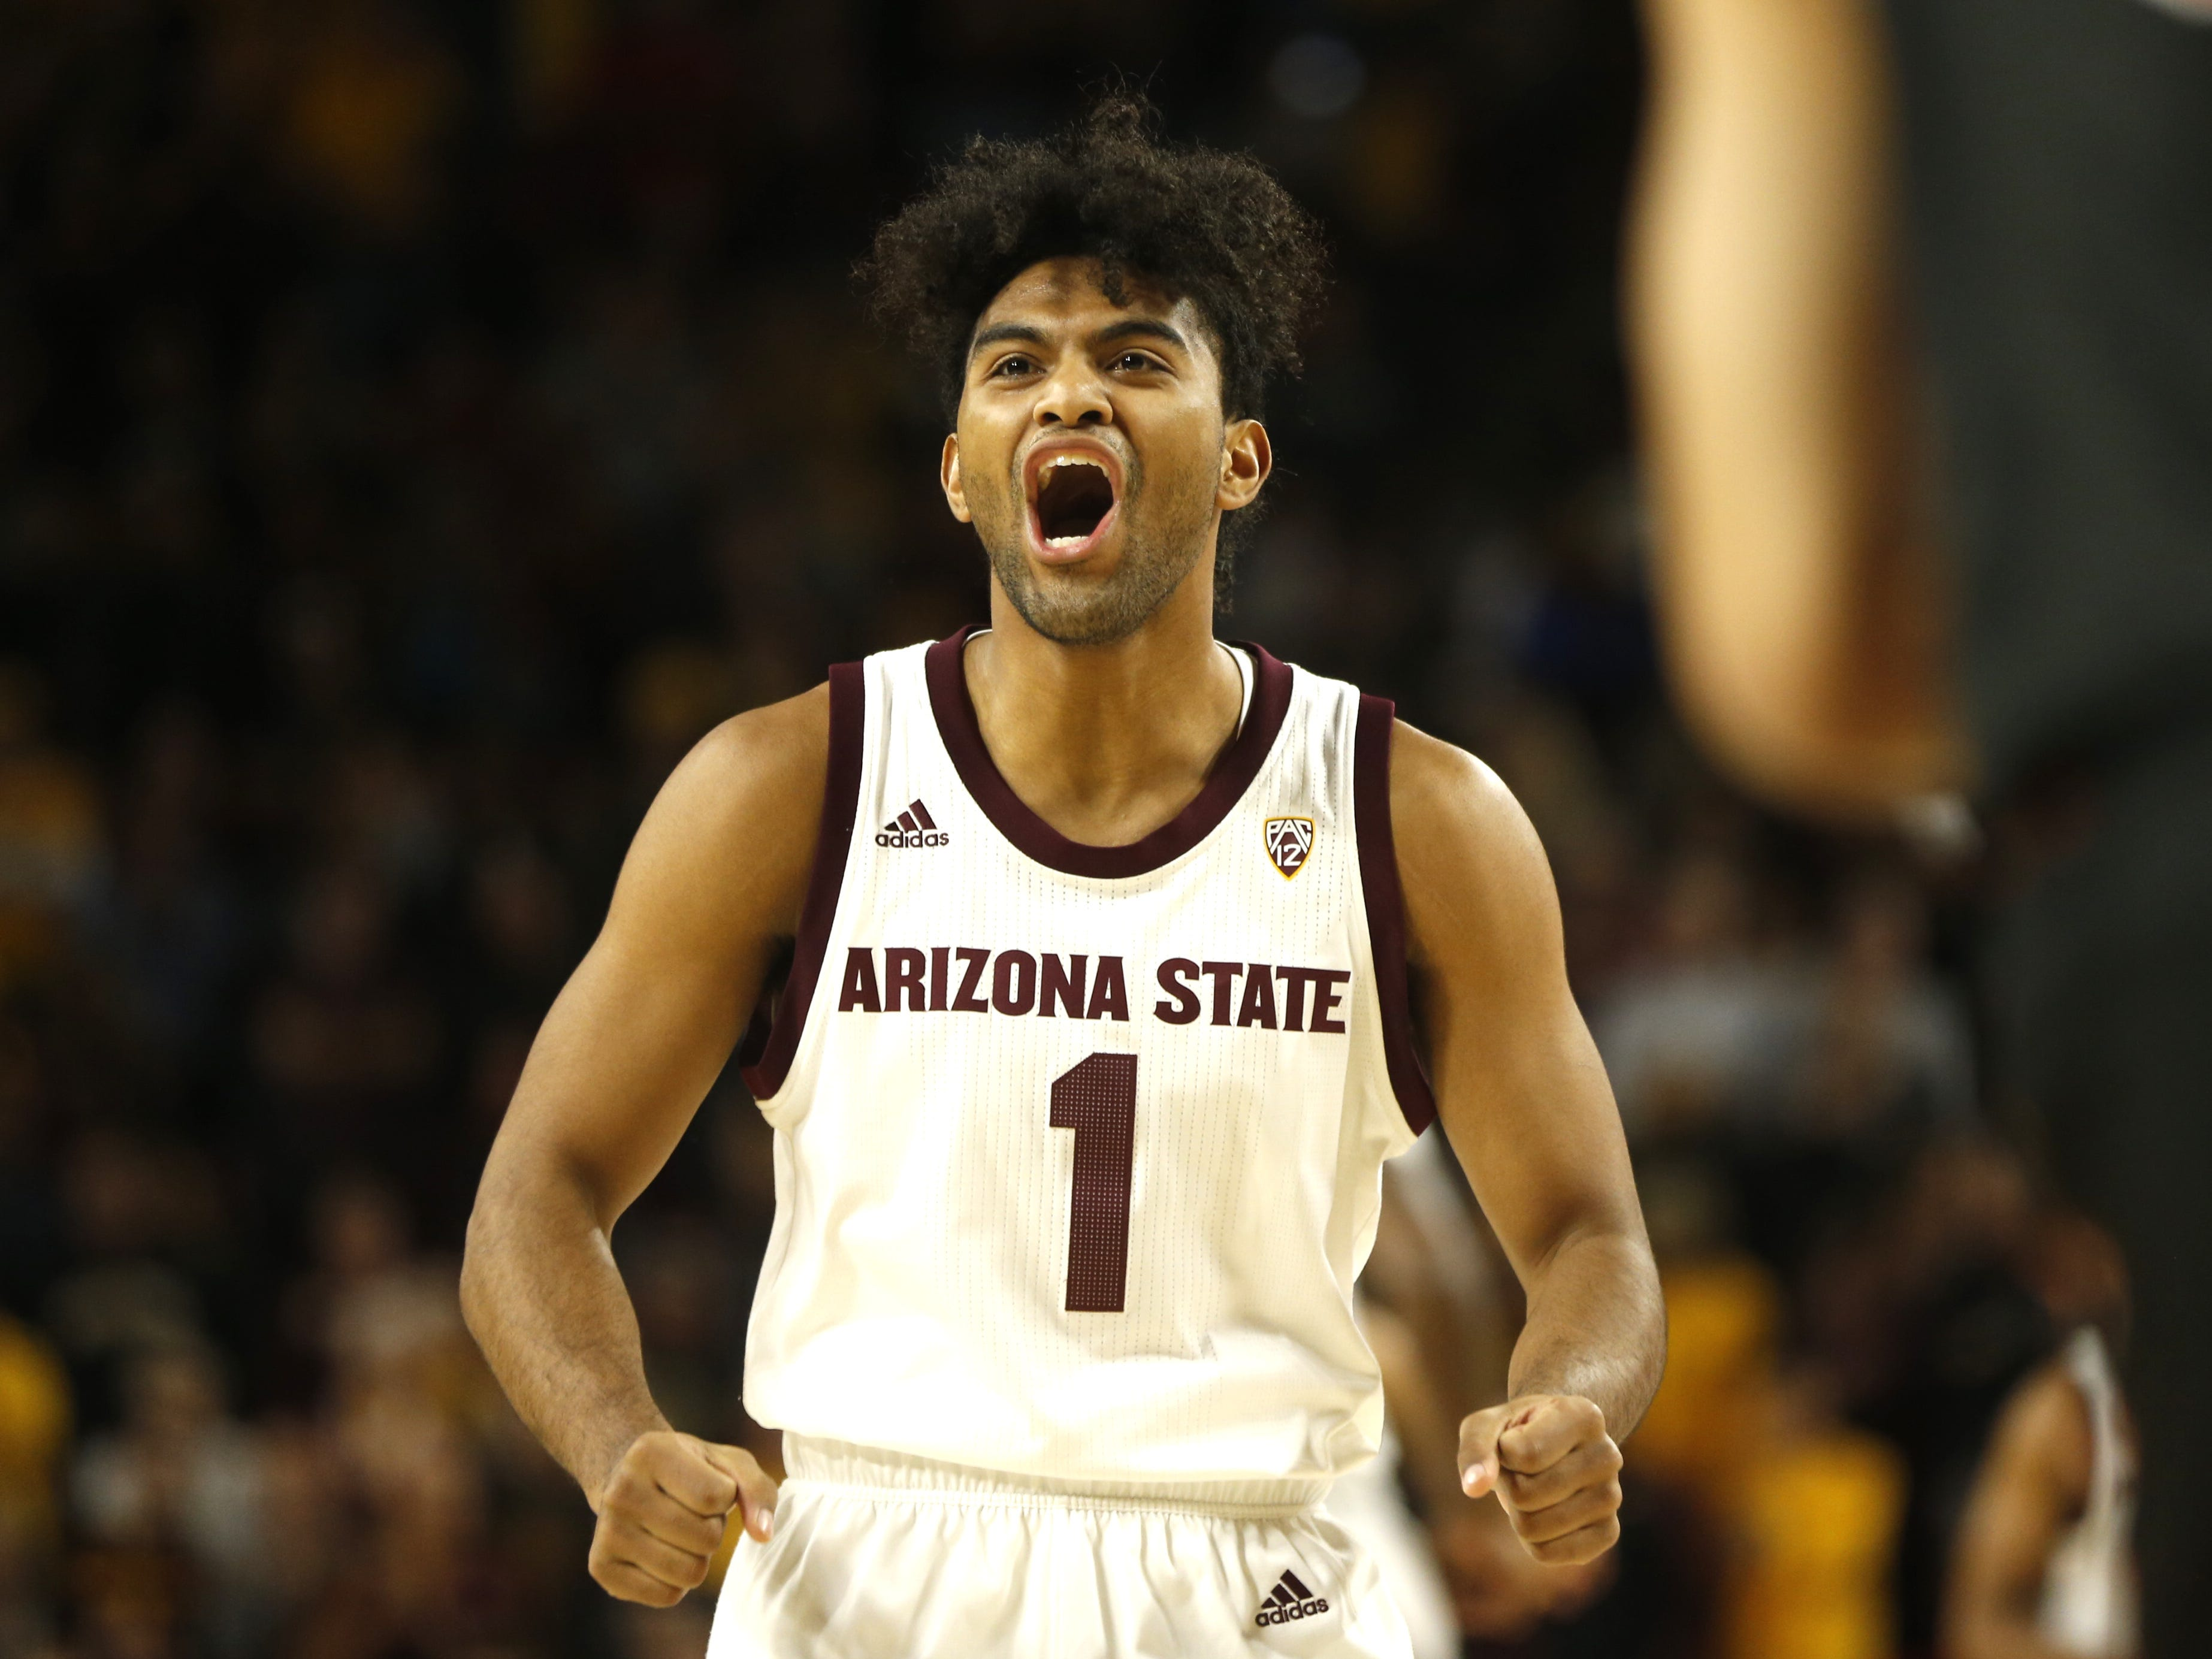 ASU's Remy Martin (1) screams after making the opening basket against Princeton during the first half at Wells Fargo Arena in Tempe, Ariz. on December 29, 2018.